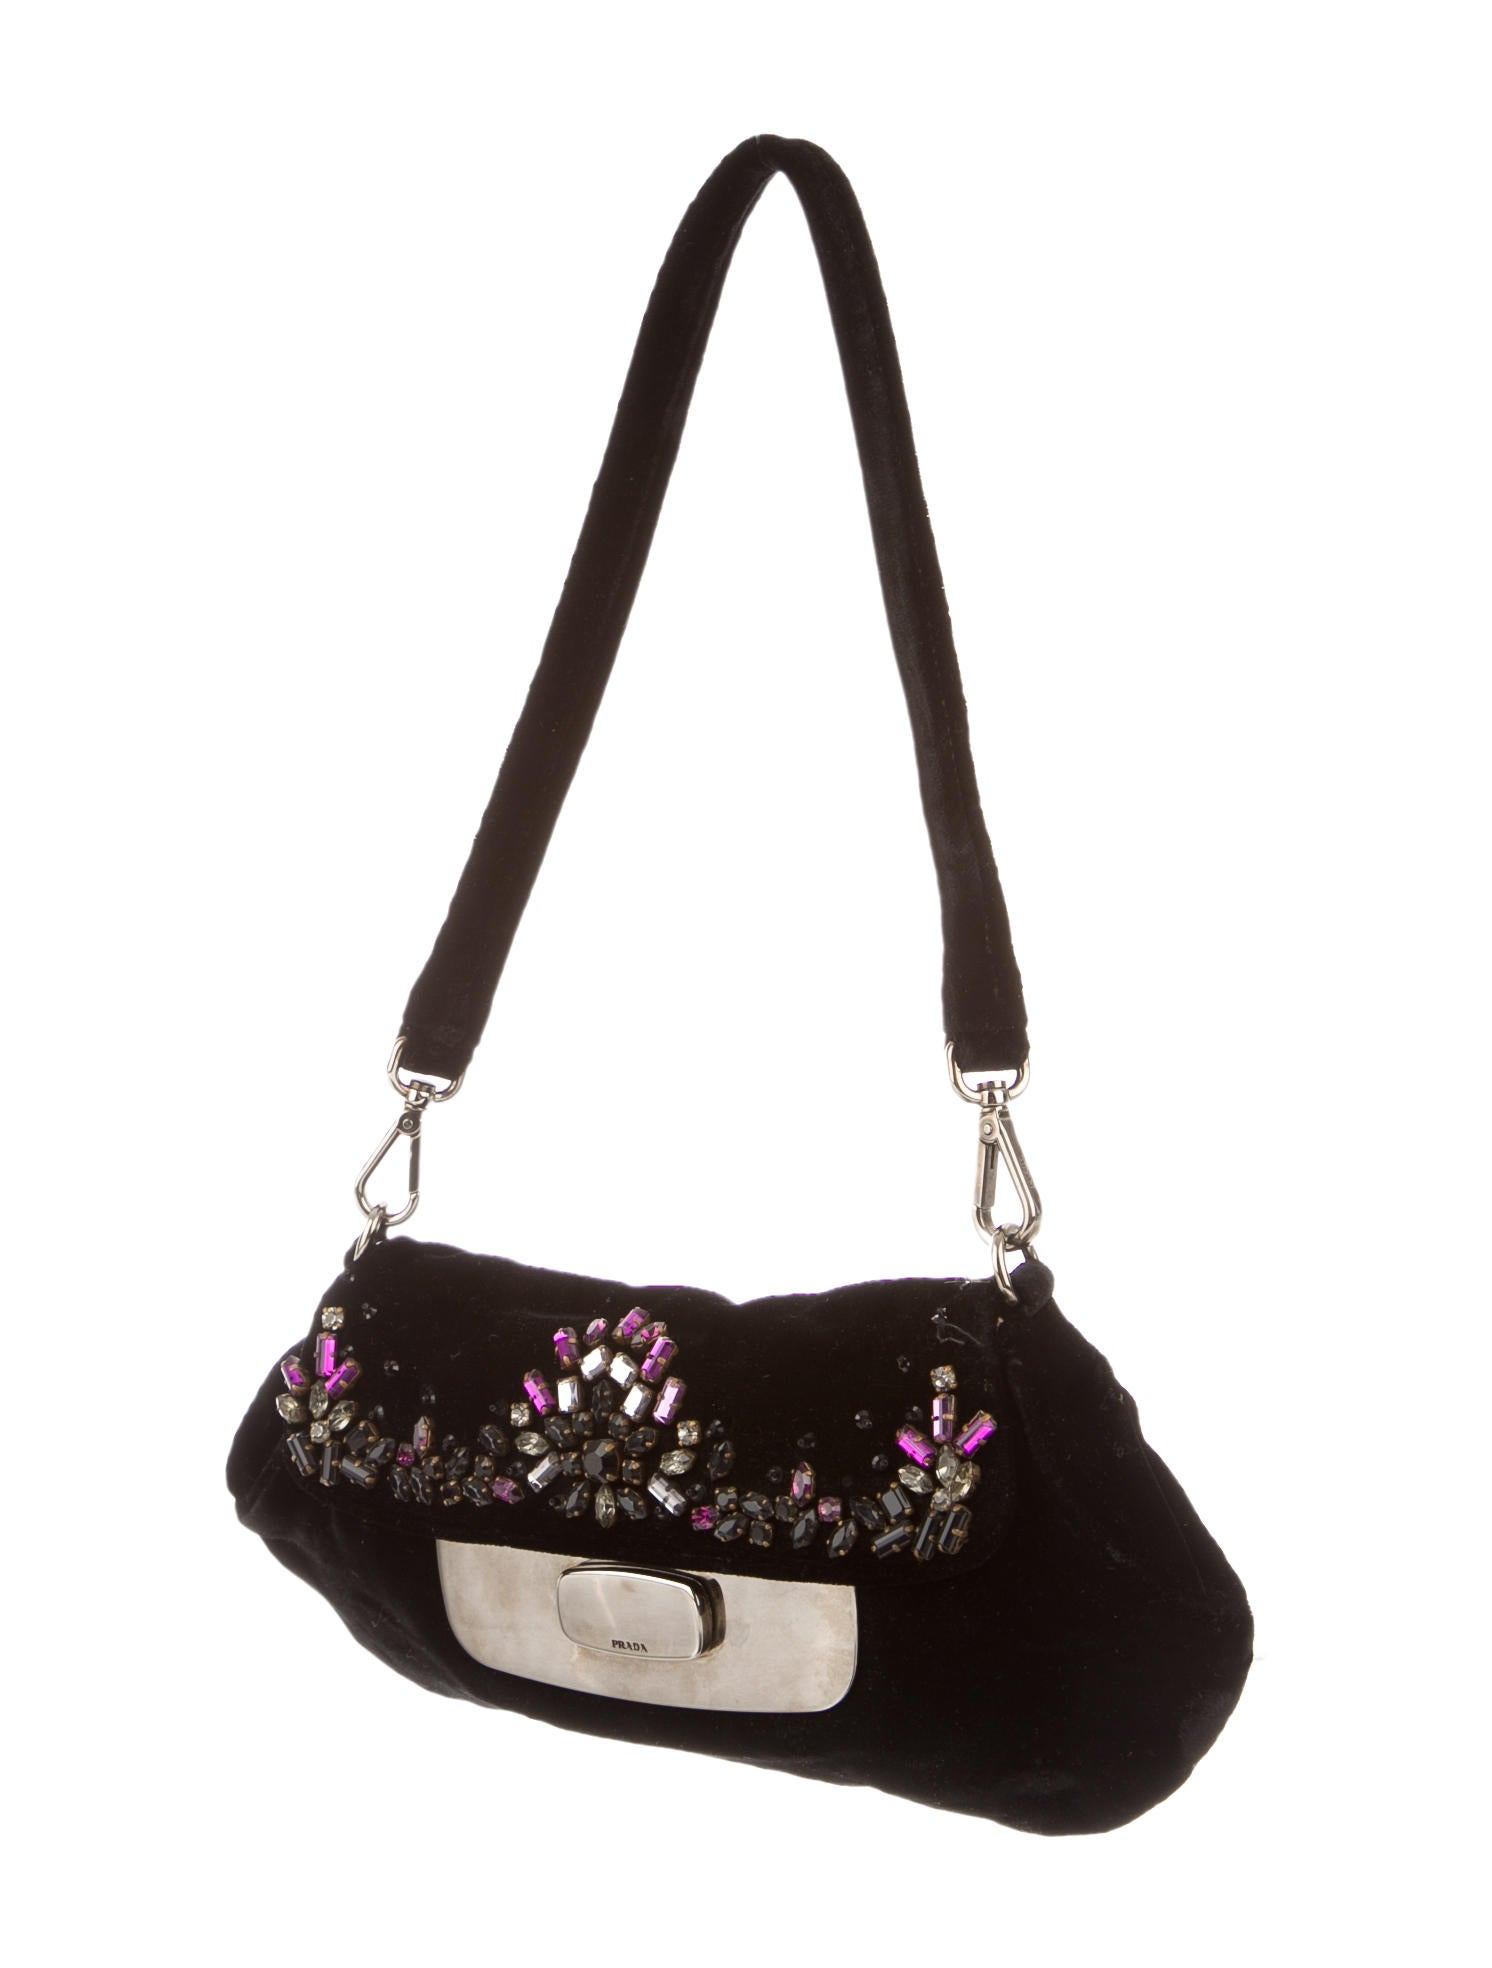 a37f0d8ad4a2 Prada Velvet Bag Strap | Stanford Center for Opportunity Policy in ...